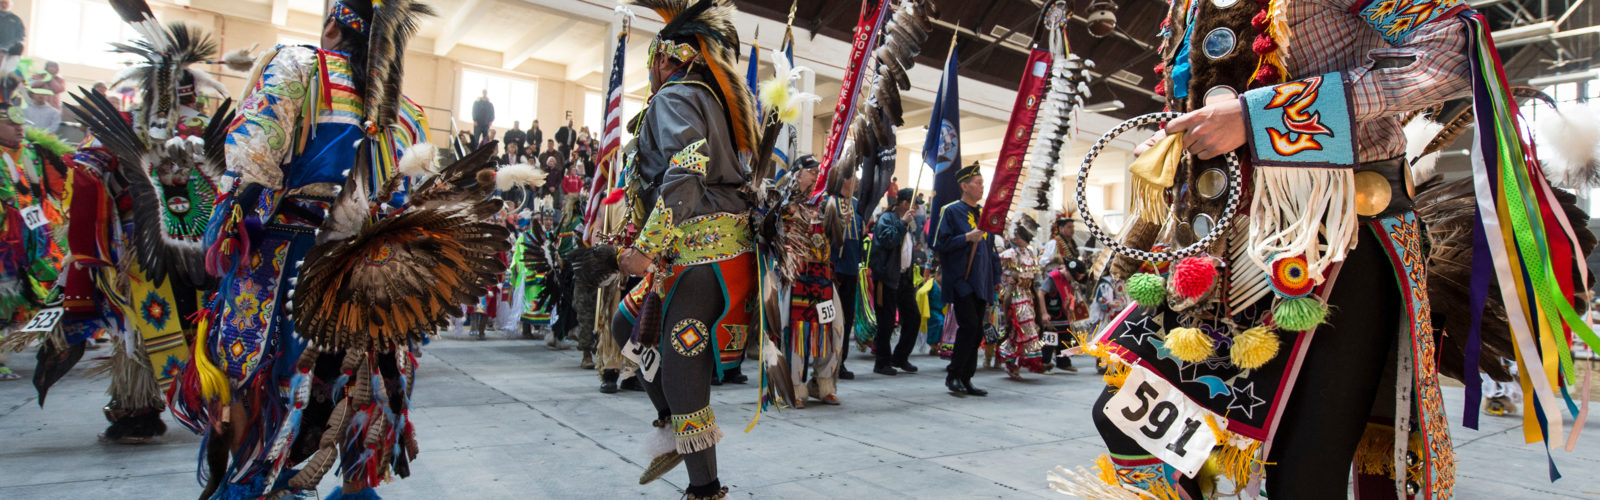 Members from numerous Native American tribes participate in a grand